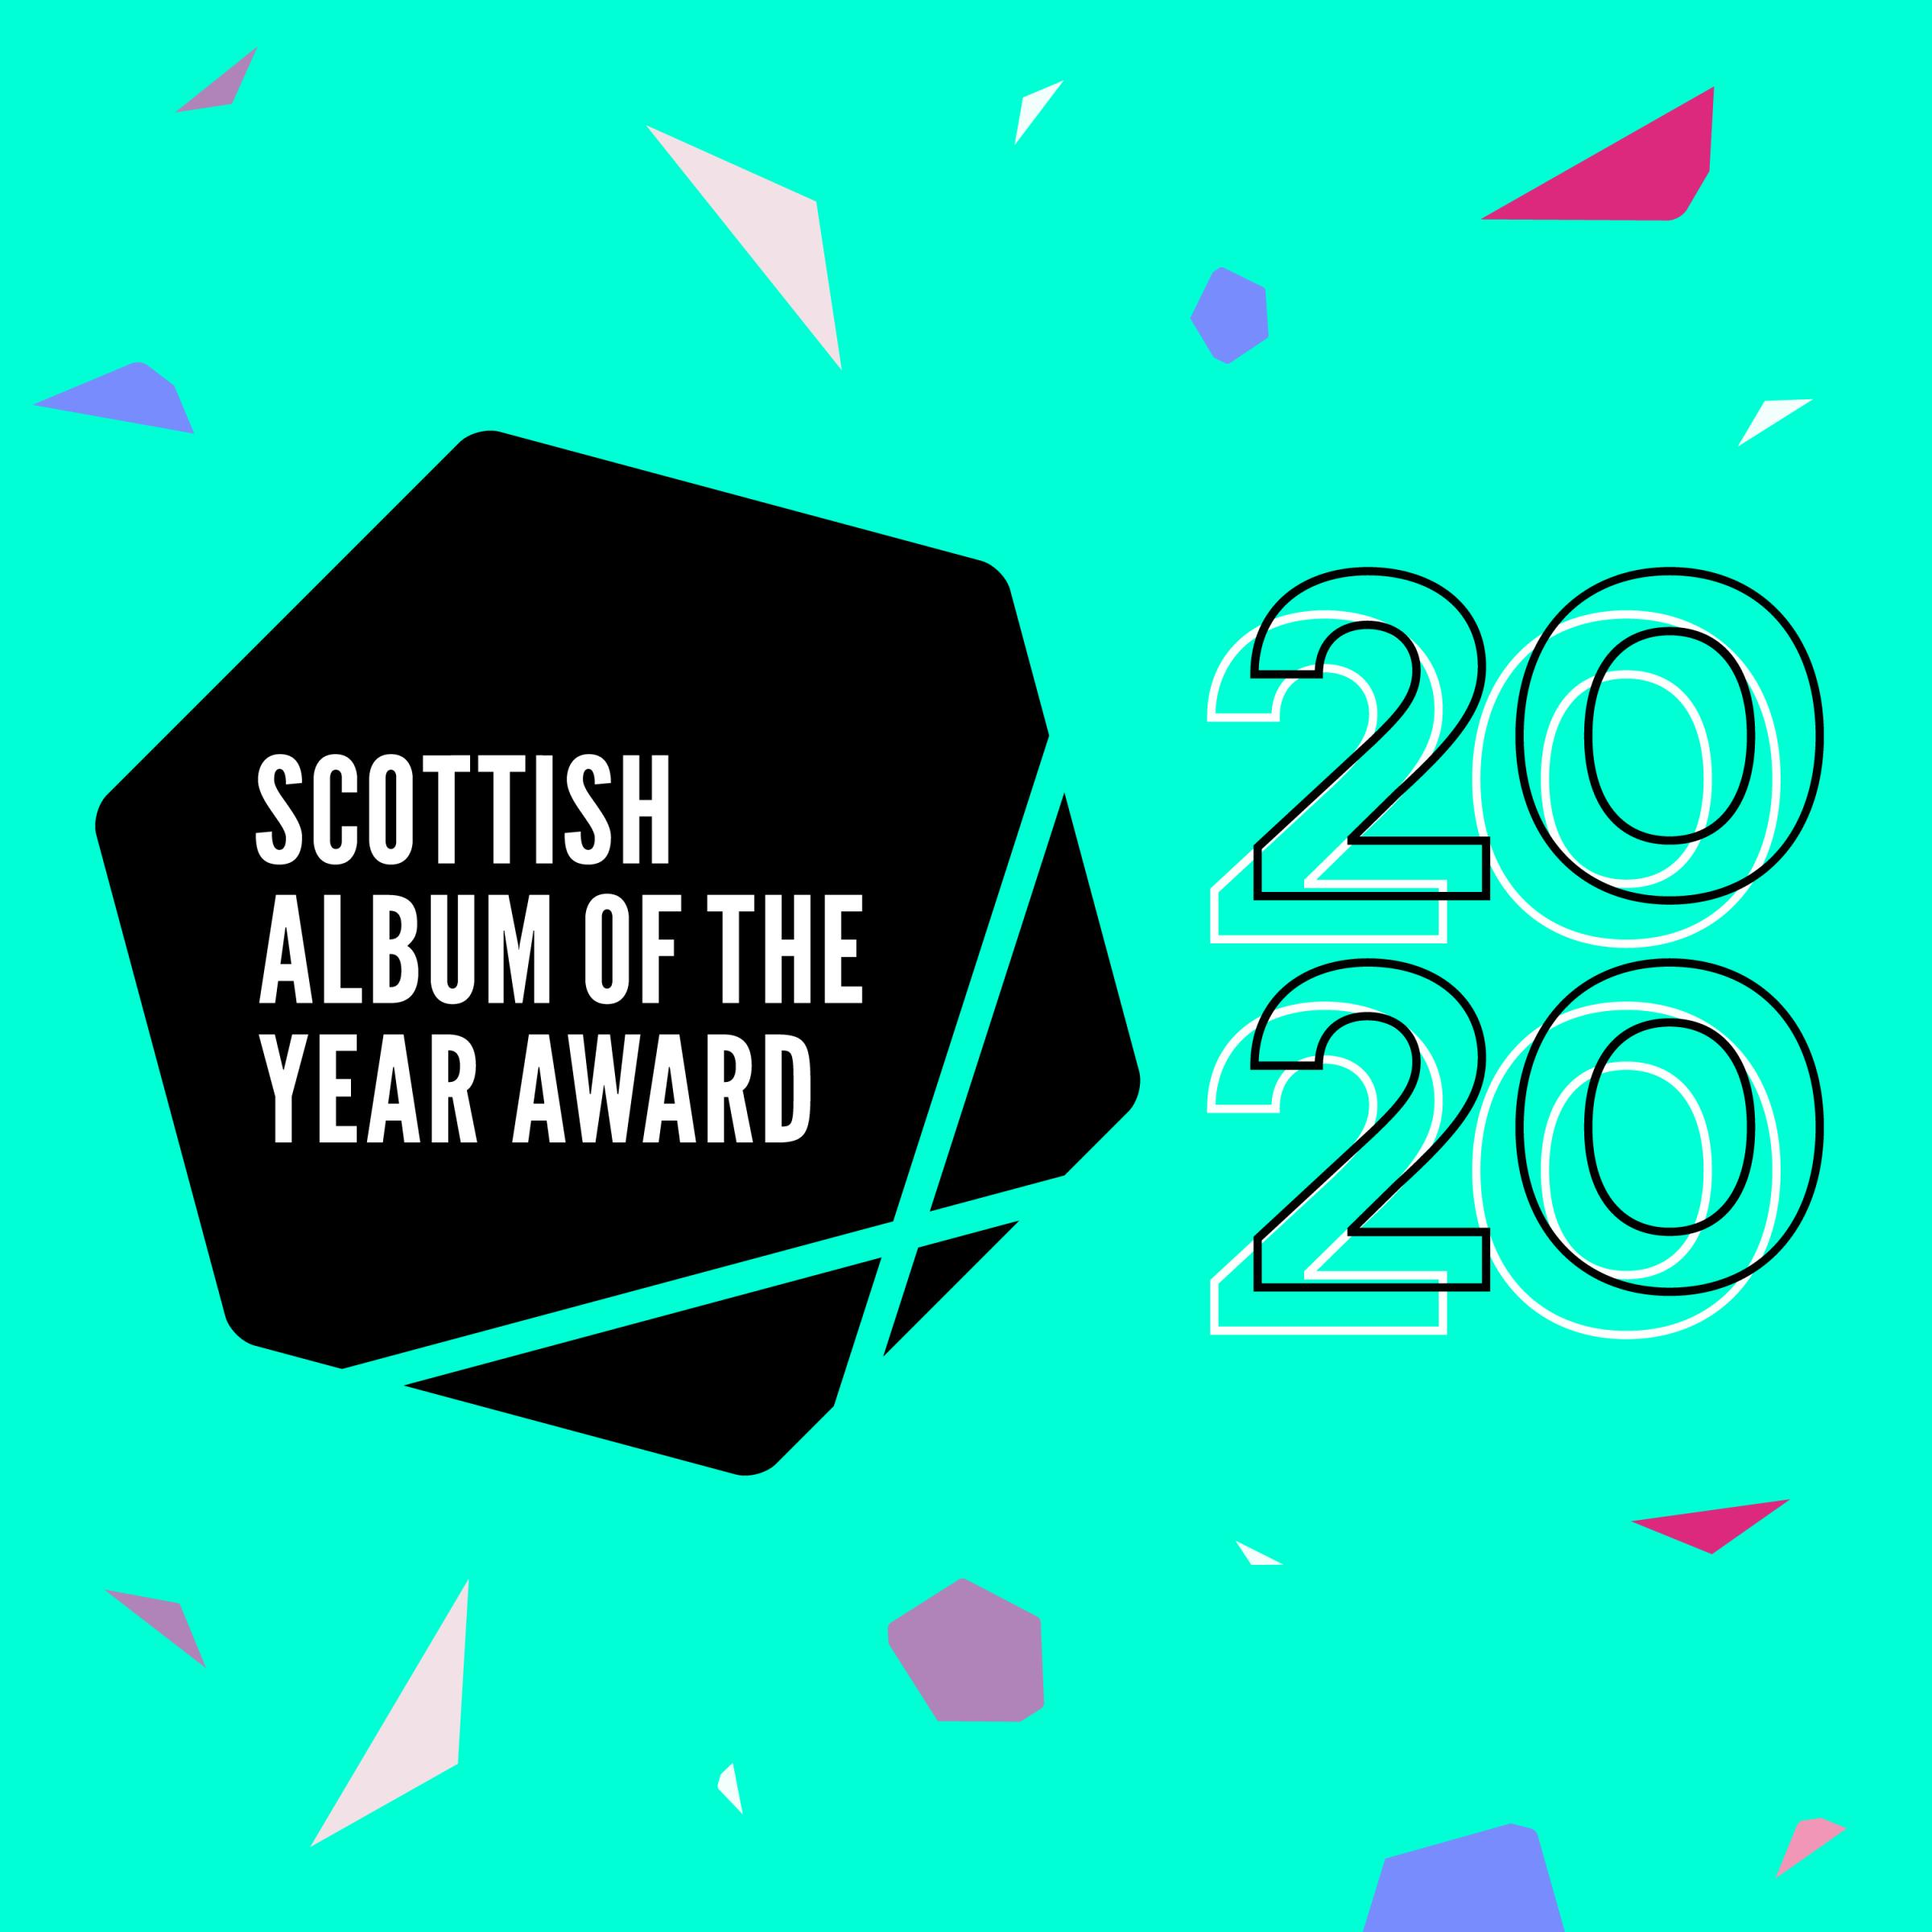 2 days left to vote for Scotland's Album of the Year winner